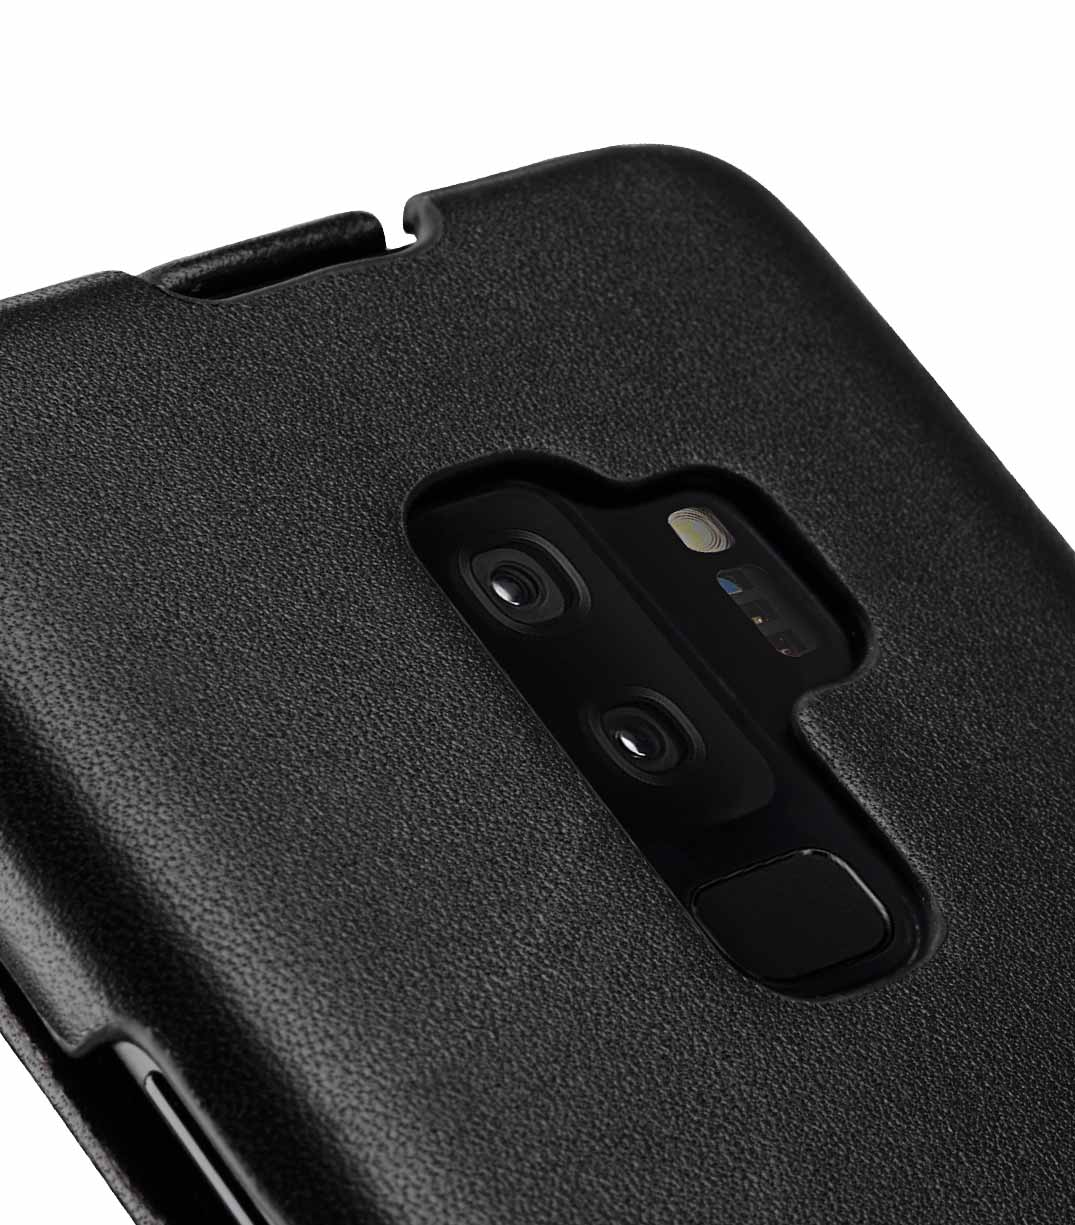 MelkcoPremium Leather Case for Samsung Galaxy S9 Plus - Jacka Type (Black)